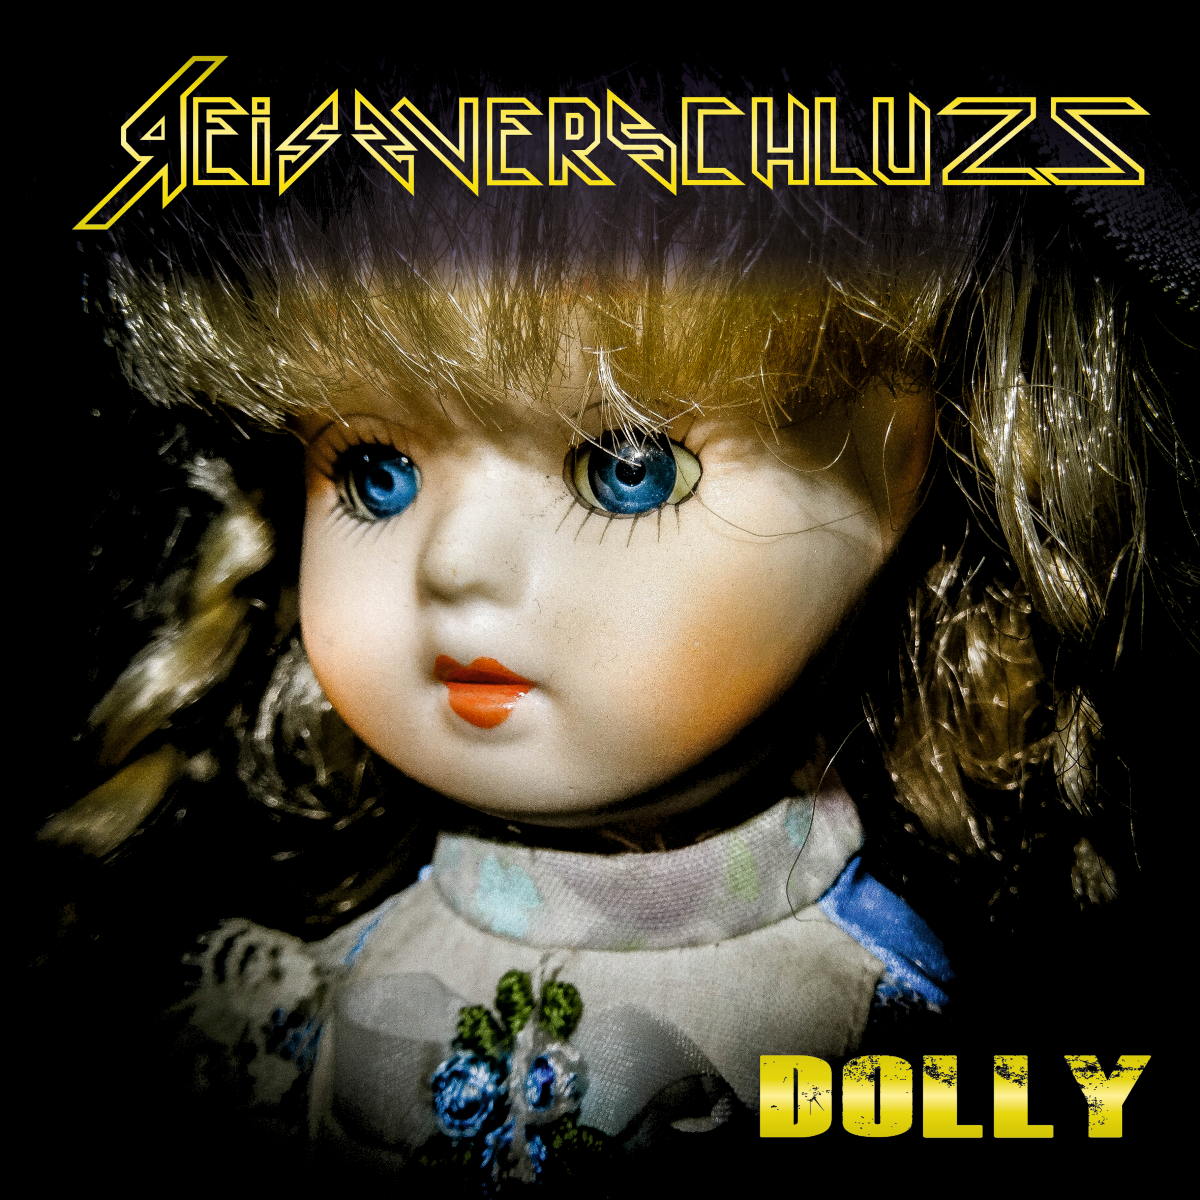 Reissverschluzz - Dolly (Single-Cover)